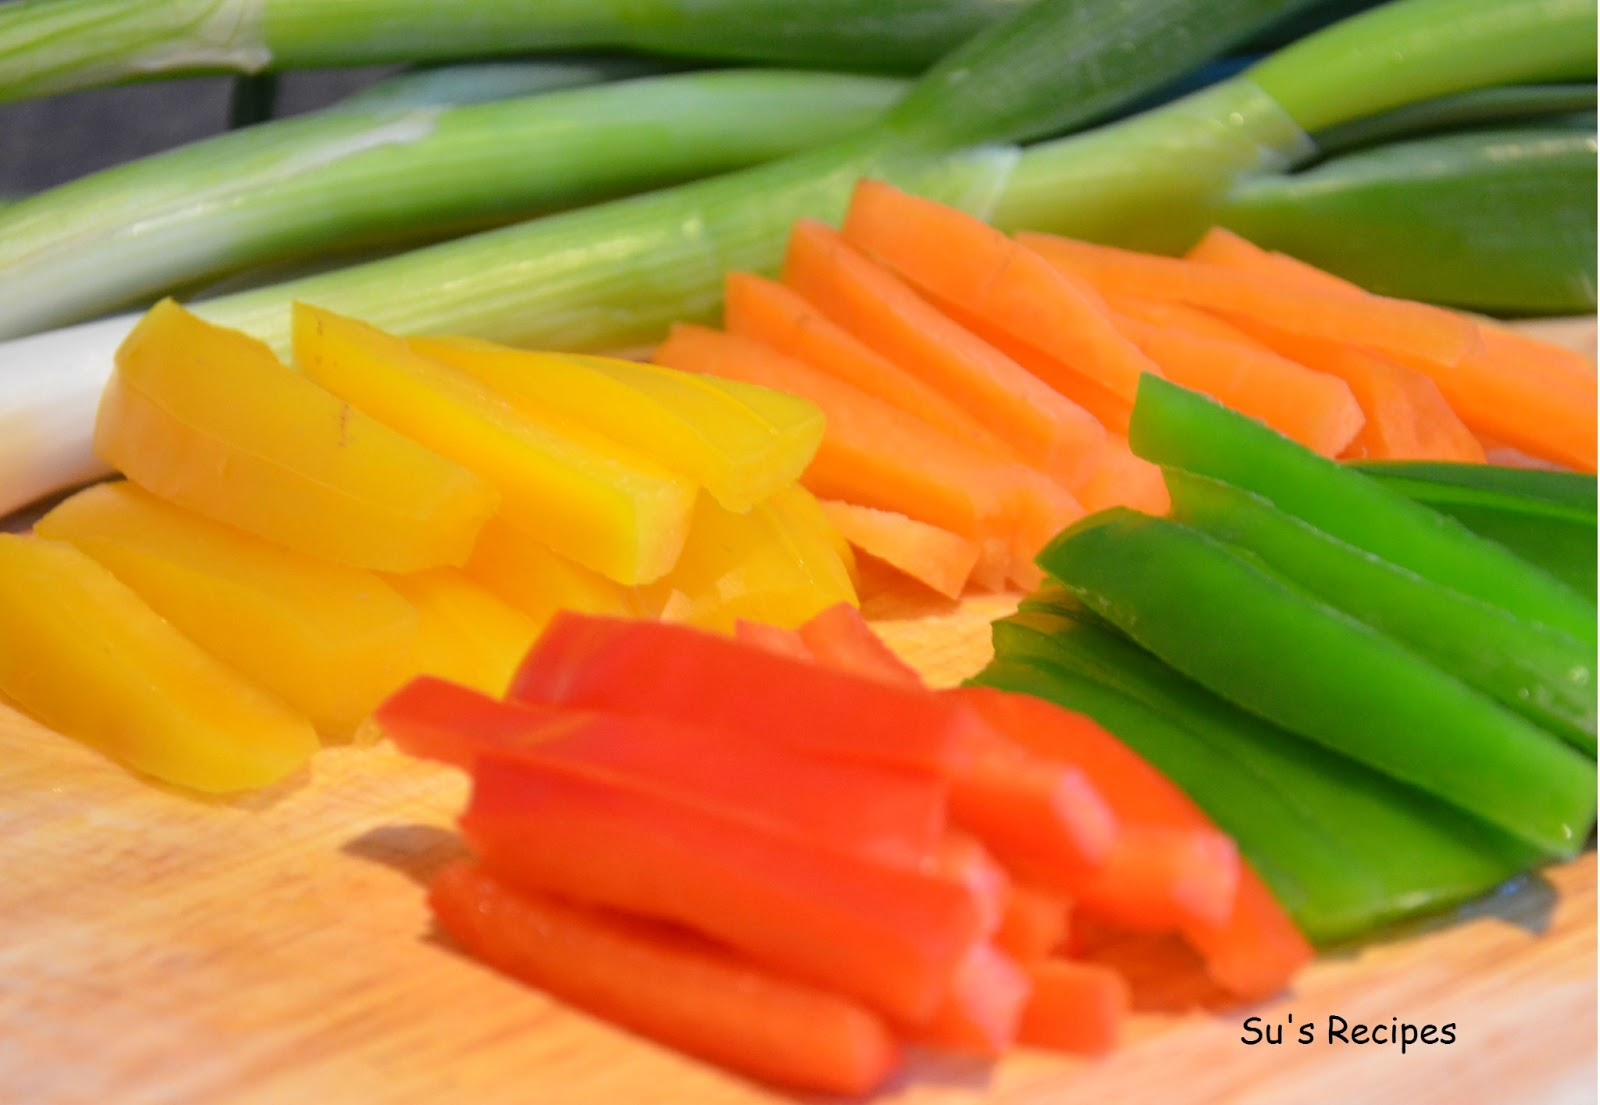 bell peppers, capsicum, spring onions, carrots, su's Recipes